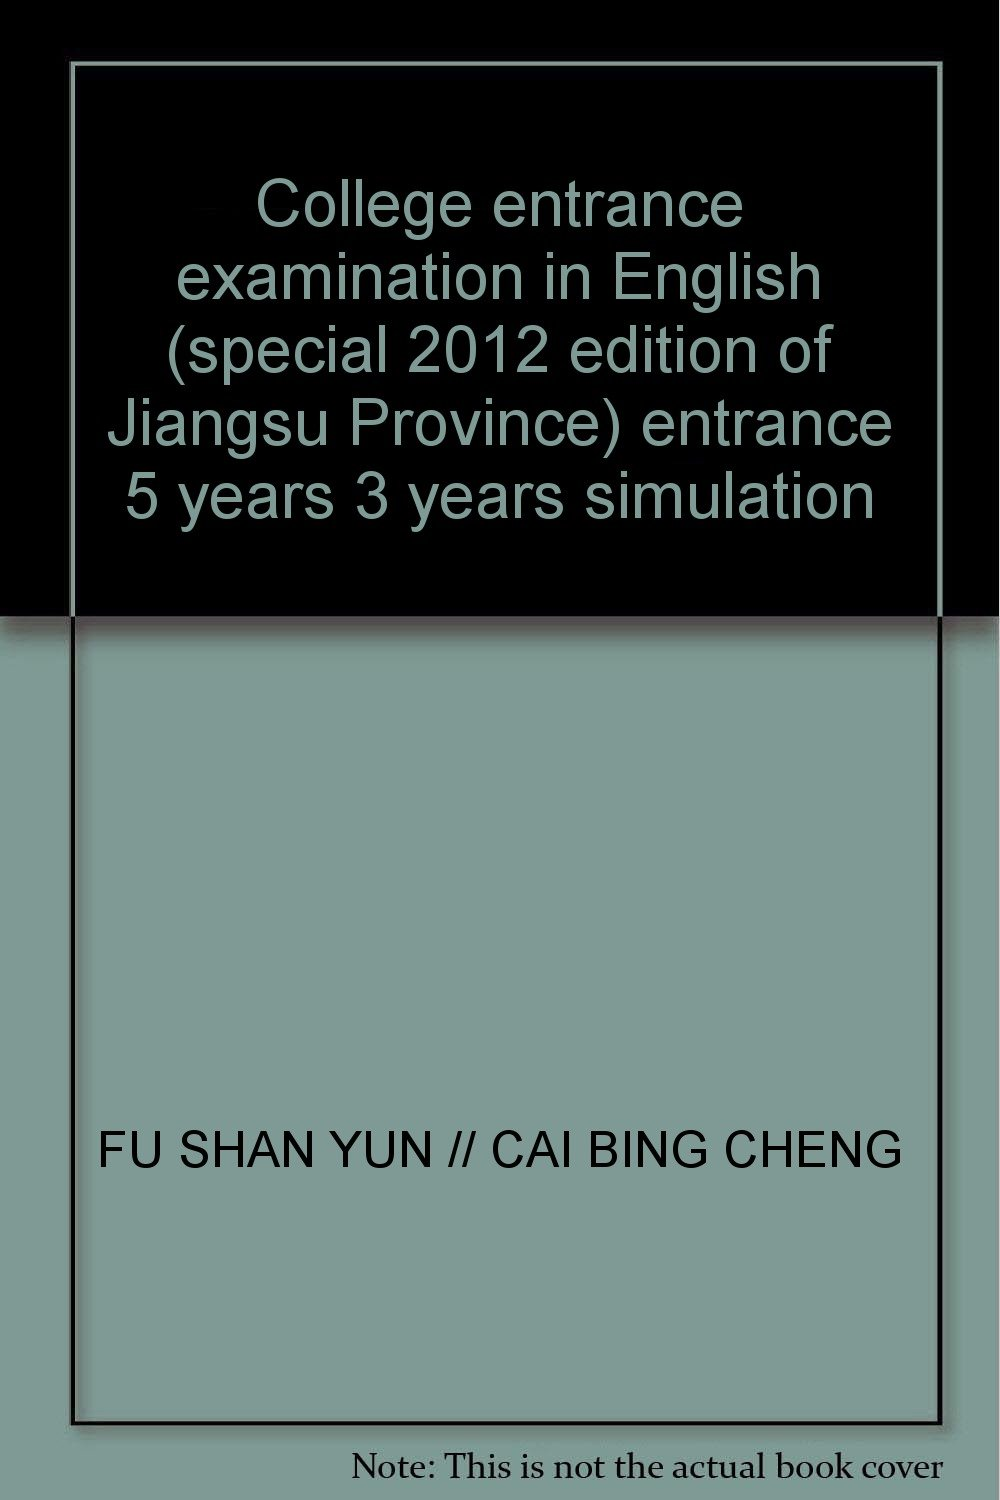 College entrance examination in English (special 2012 edition of Jiangsu Province) entrance 5 years 3 years simulation ebook